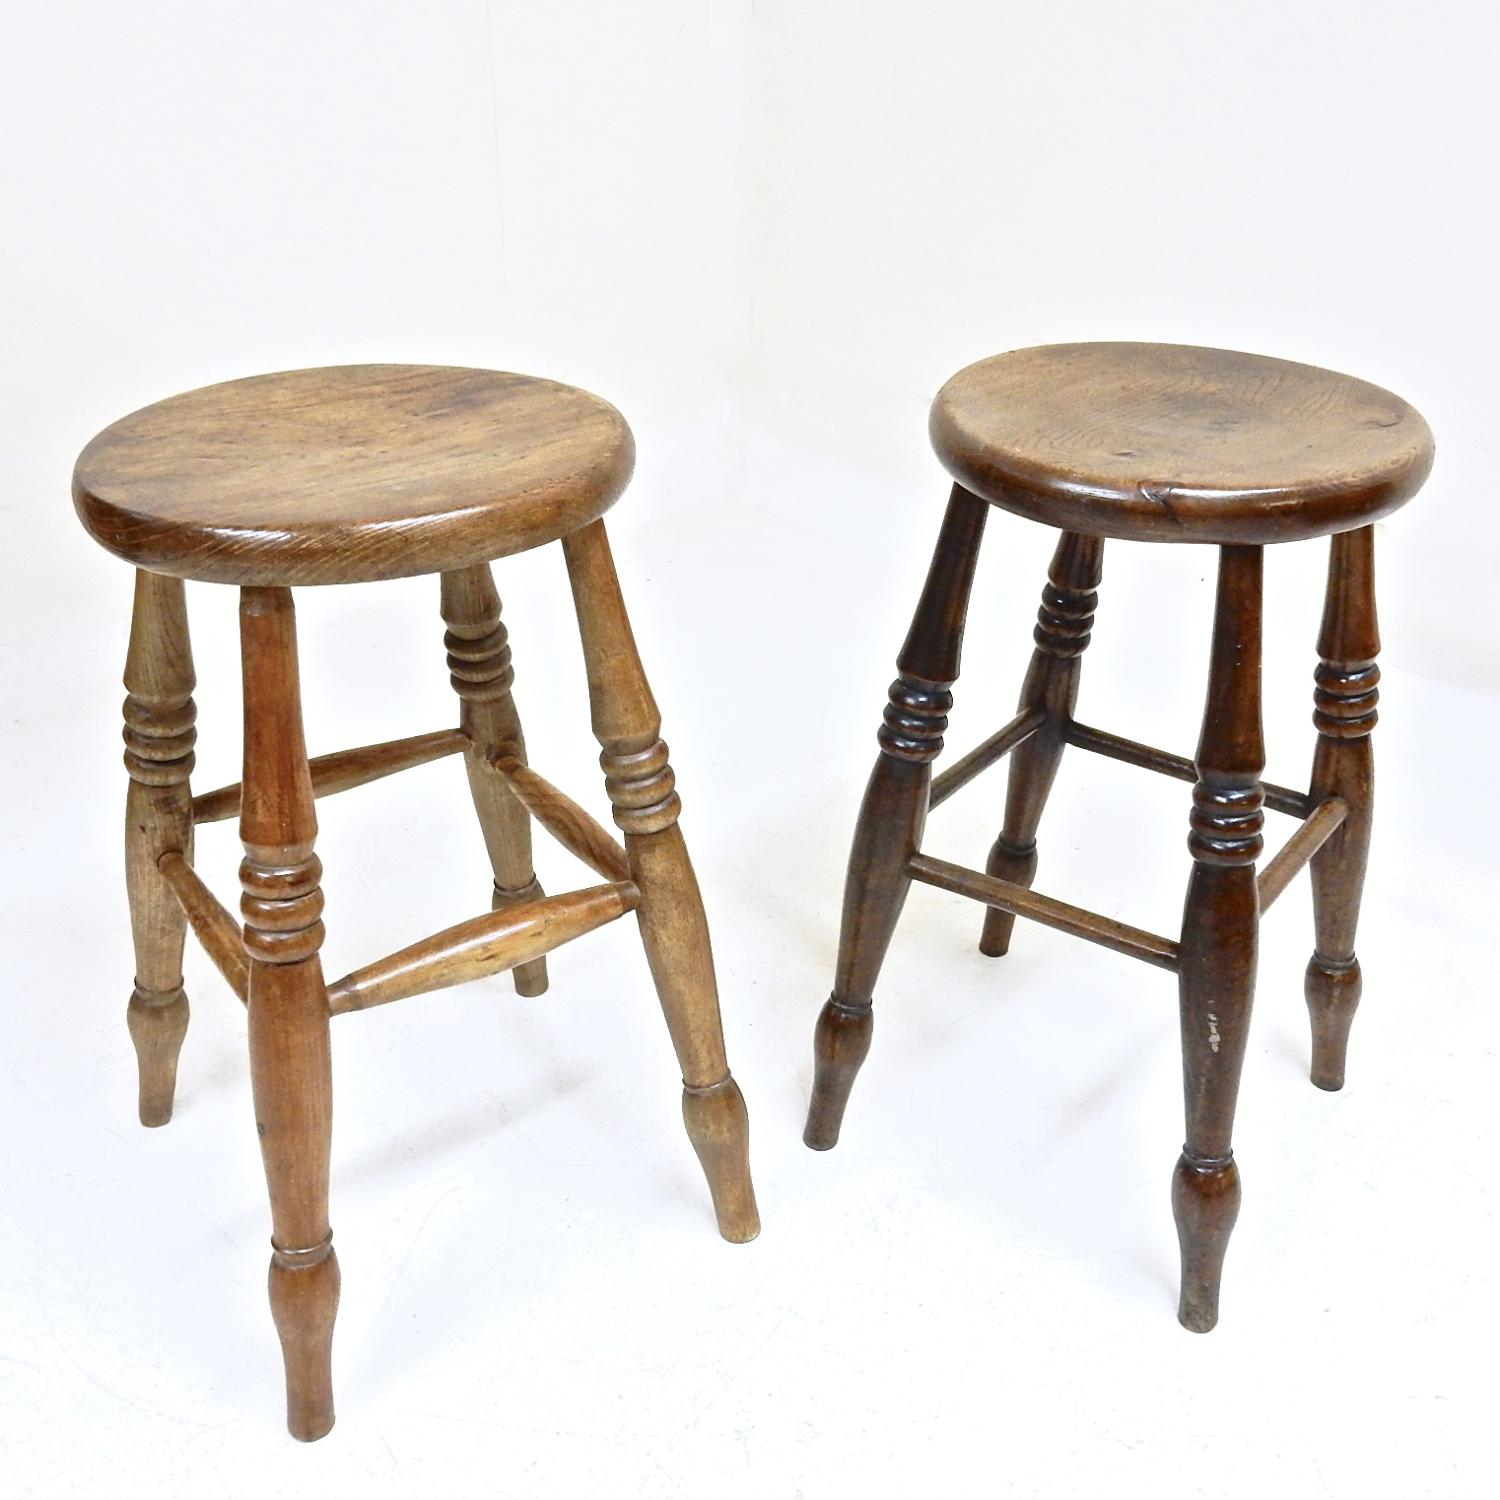 Two Antique Tavern Stools